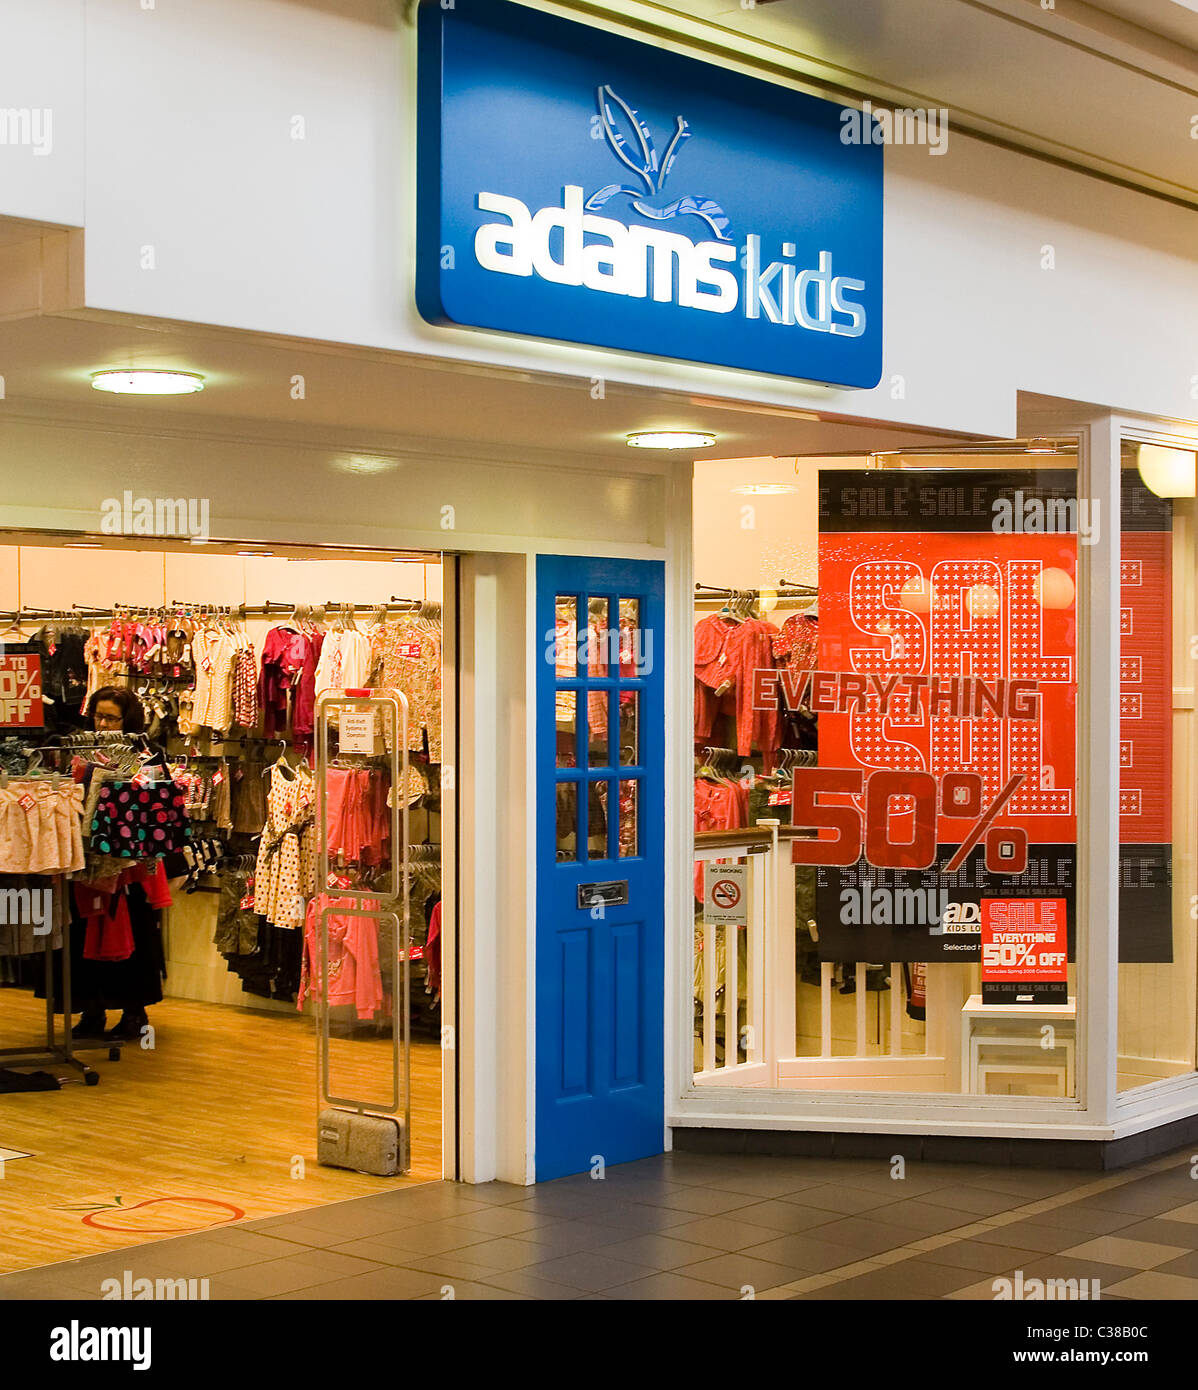 9211b98b3 Exterior of an Adams Kids store in North London Stock Photo ...